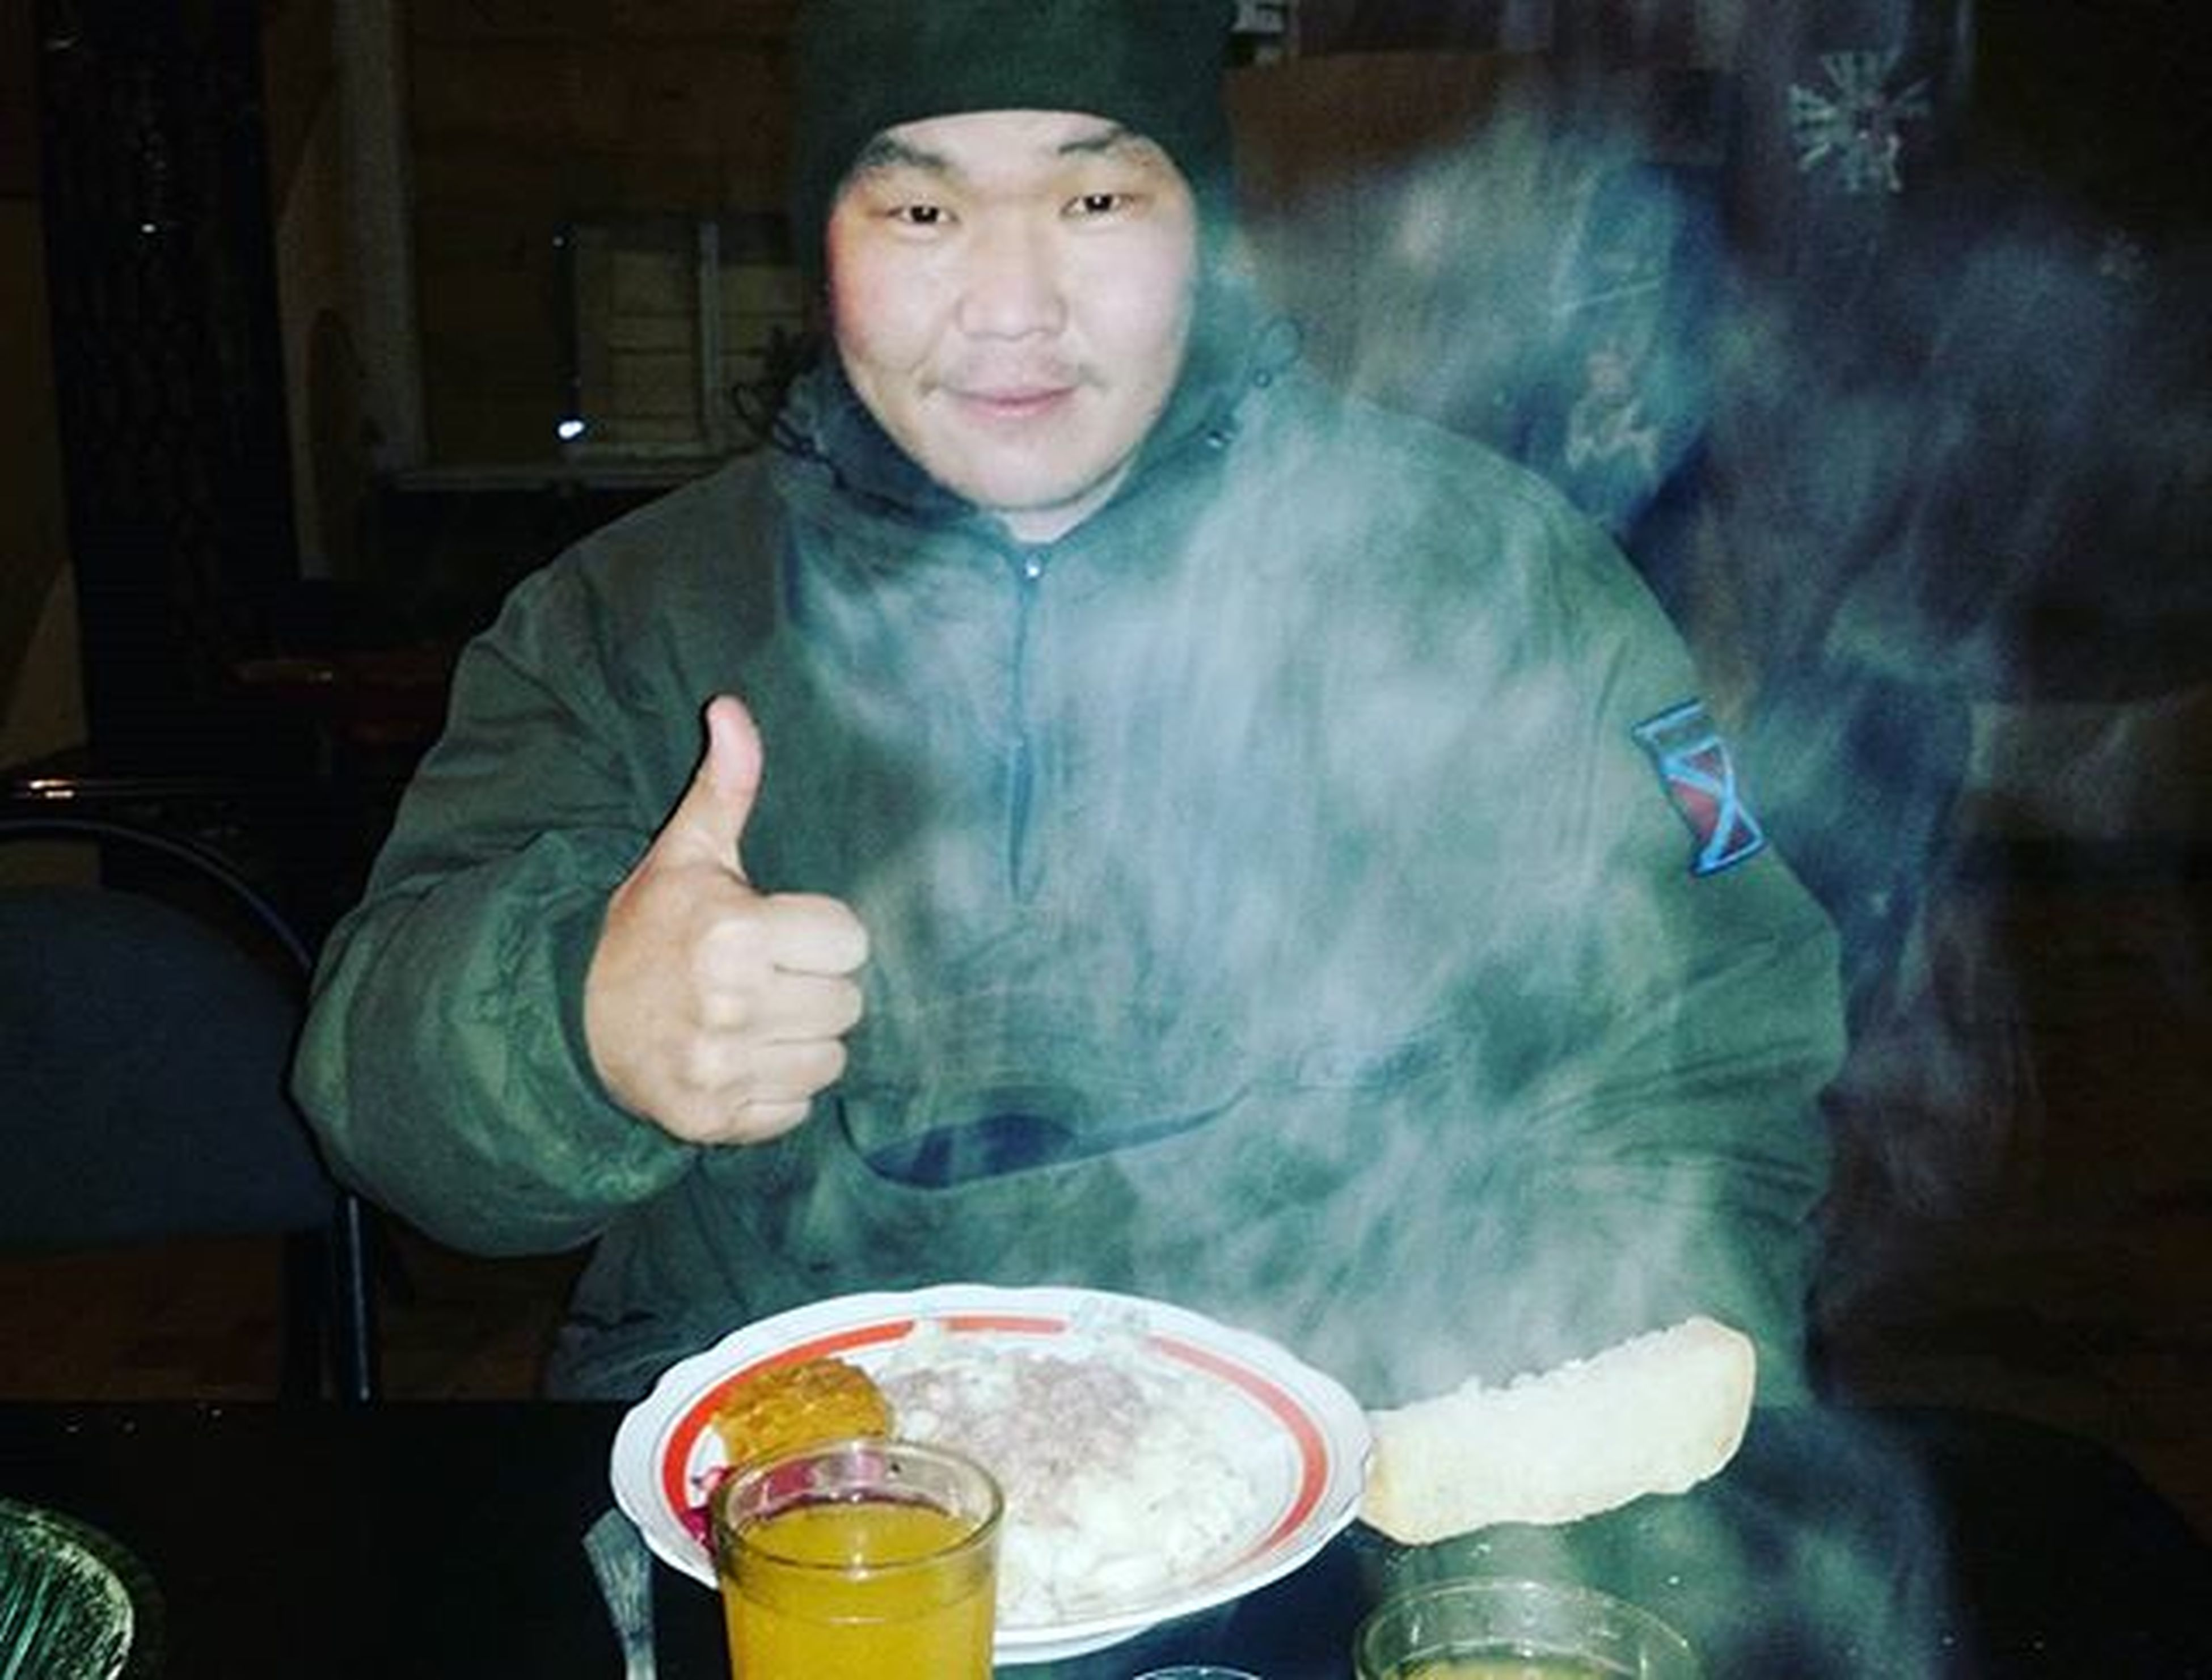 indoors, person, lifestyles, leisure activity, drink, young adult, refreshment, casual clothing, holding, waist up, water, front view, sitting, looking at camera, food and drink, table, three quarter length, reflection